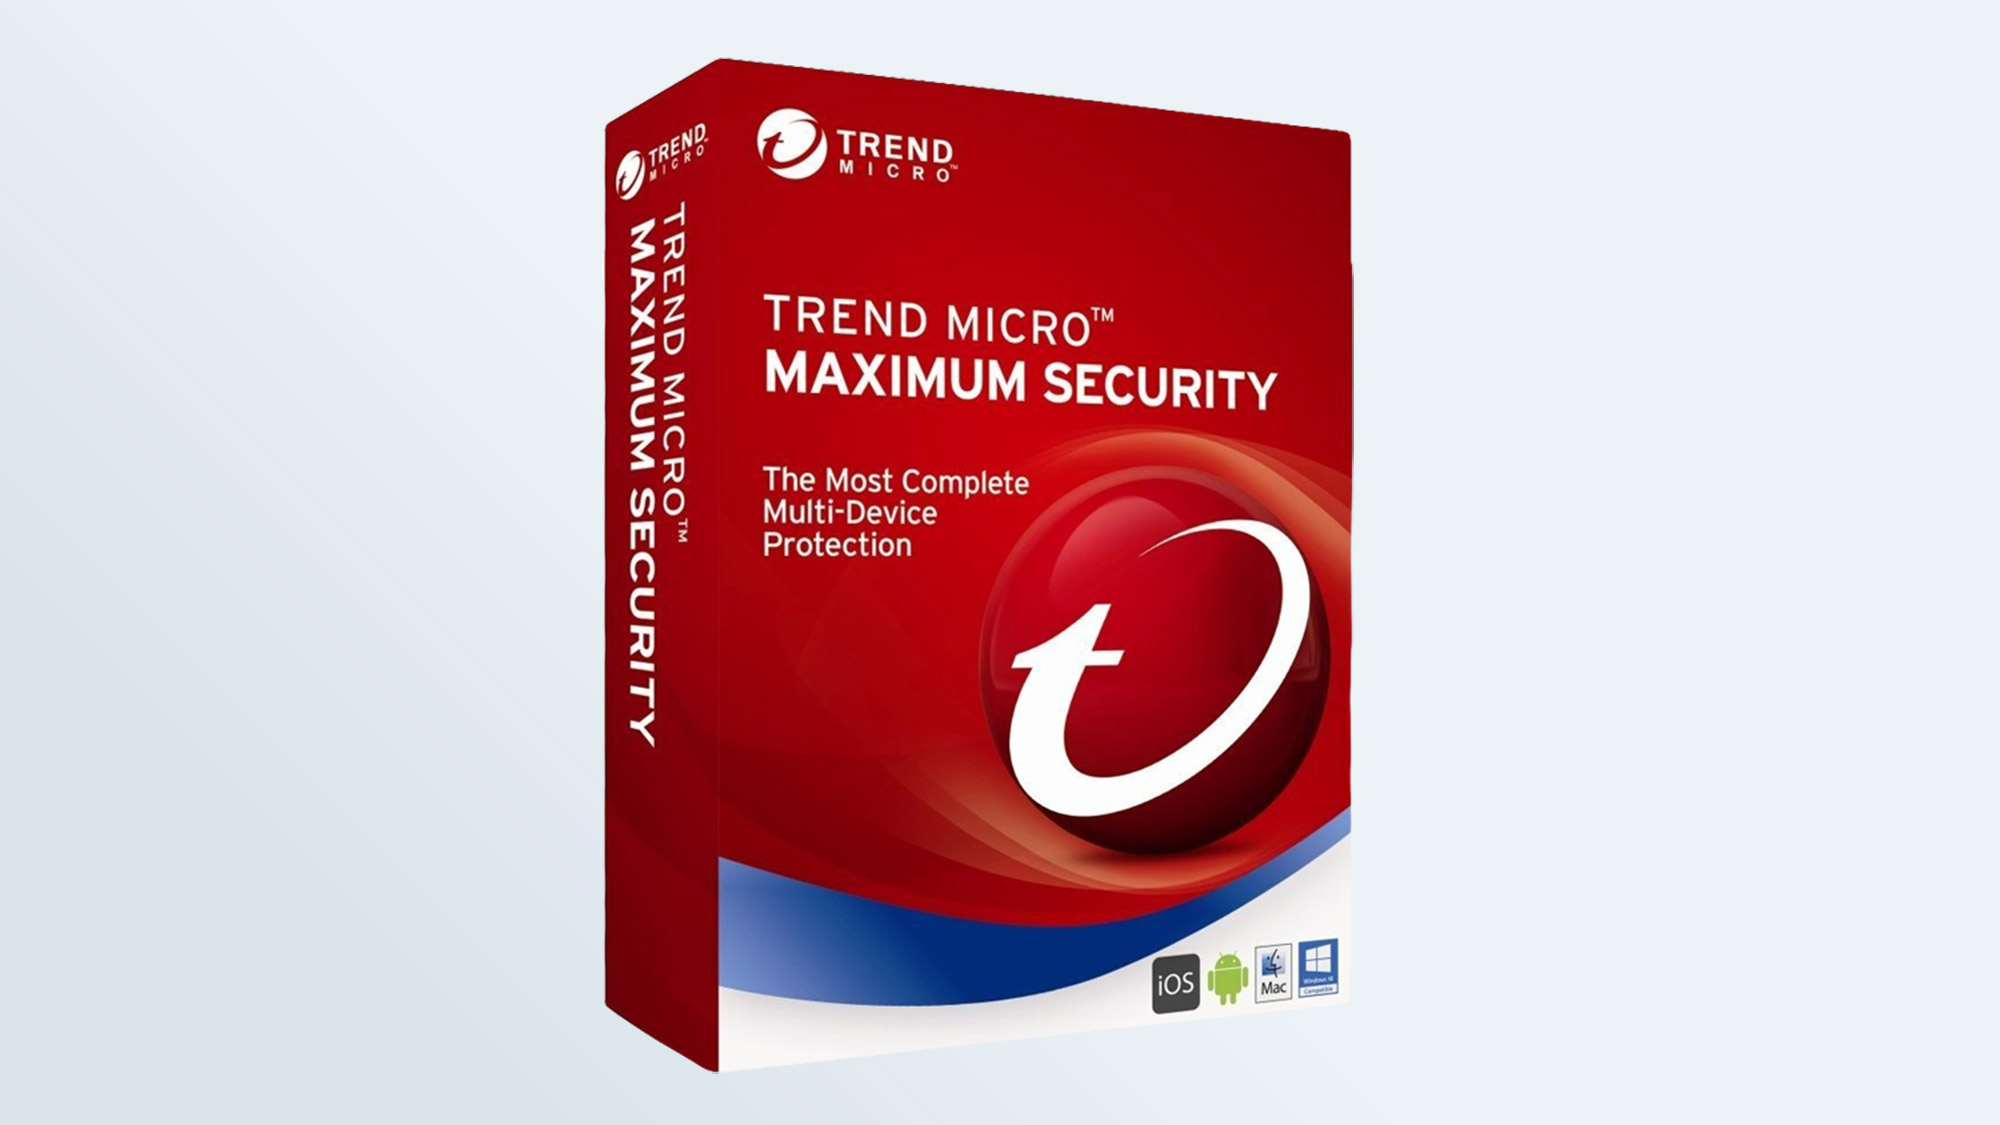 Best antivirus: Trend Micro Maximum Security